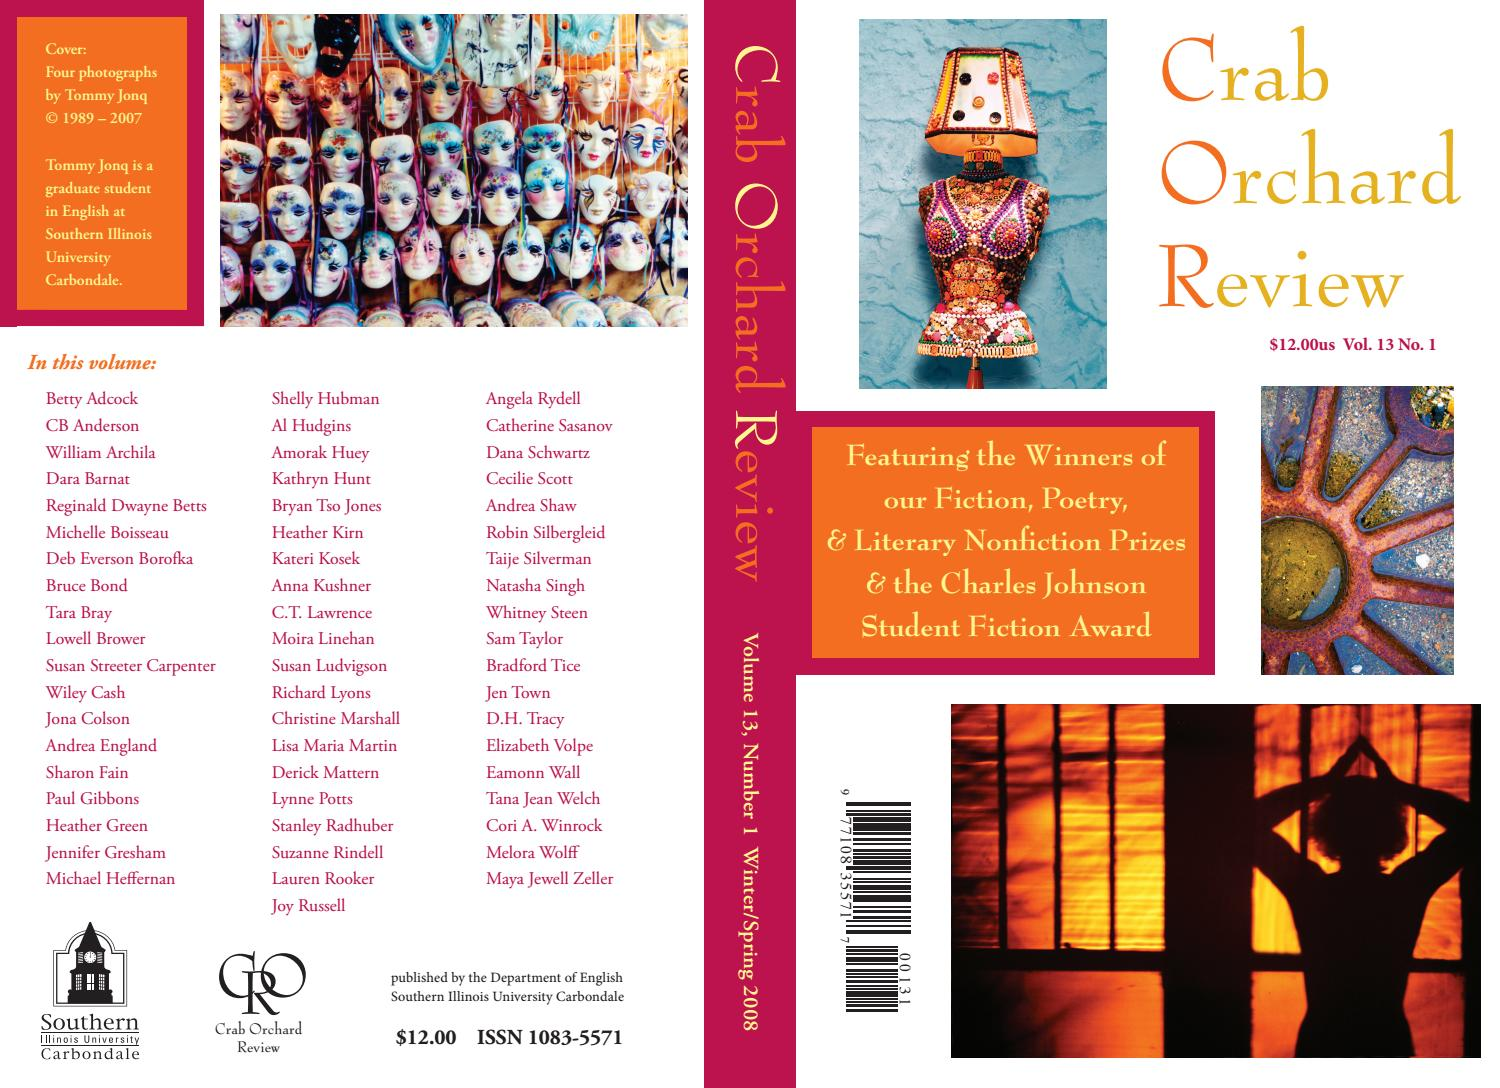 b360574eb8c5f Crab Orchard Review Vol 13 No 1 W/S 2008 by Crab Orchard Review - issuu